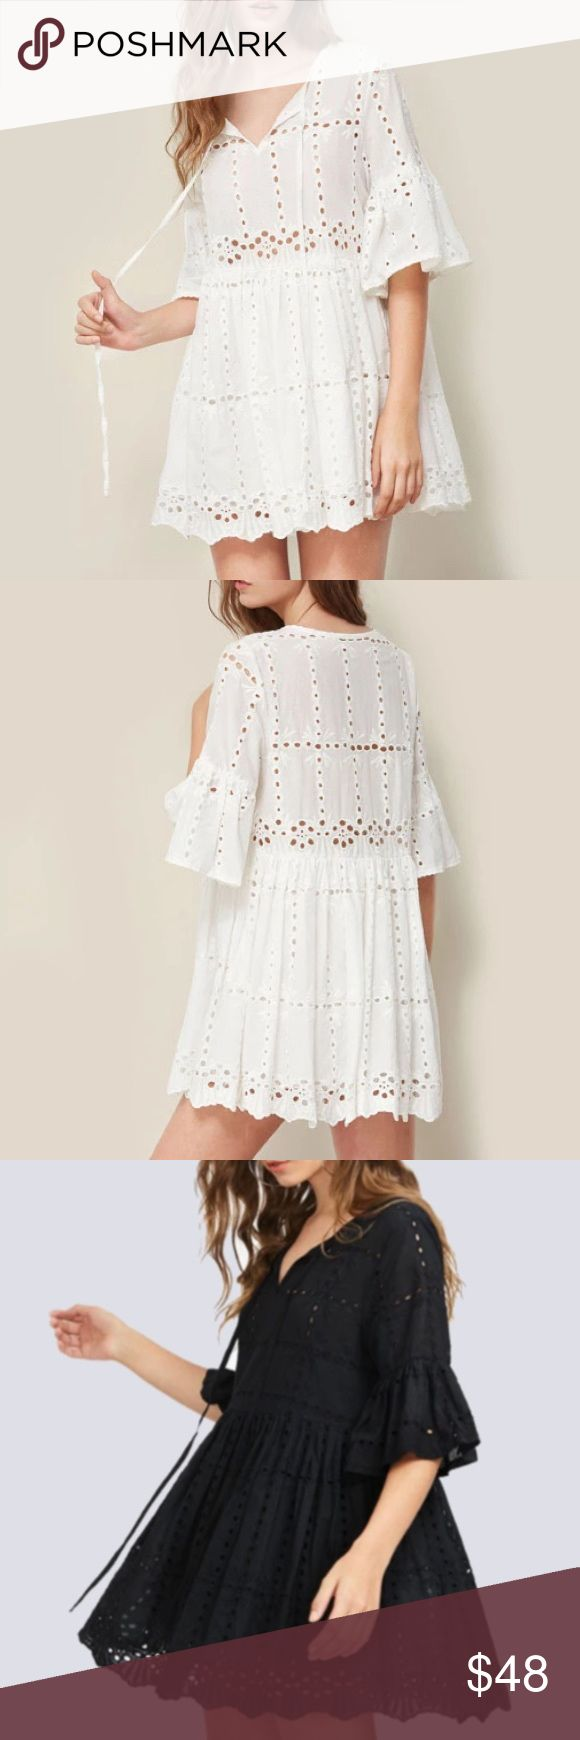 """Swingy Tieneck Tunic DRESS White Black Lace NEW BRAND NEW!! Soo pretty!! This swingy Tunic dress is simply sweet with all over scalloped lace detail.   S: Bust: 37.6""""/Length: 32.1"""" M: Bust: 39.2""""/Length: 32.6"""" L: Bust: 40.7""""/Length: 33.1""""  🌟🌟Item is Brand New, direct from the Manufacturer, & Sealed in Pkg. 🌟🌟 austin gal Dresses"""